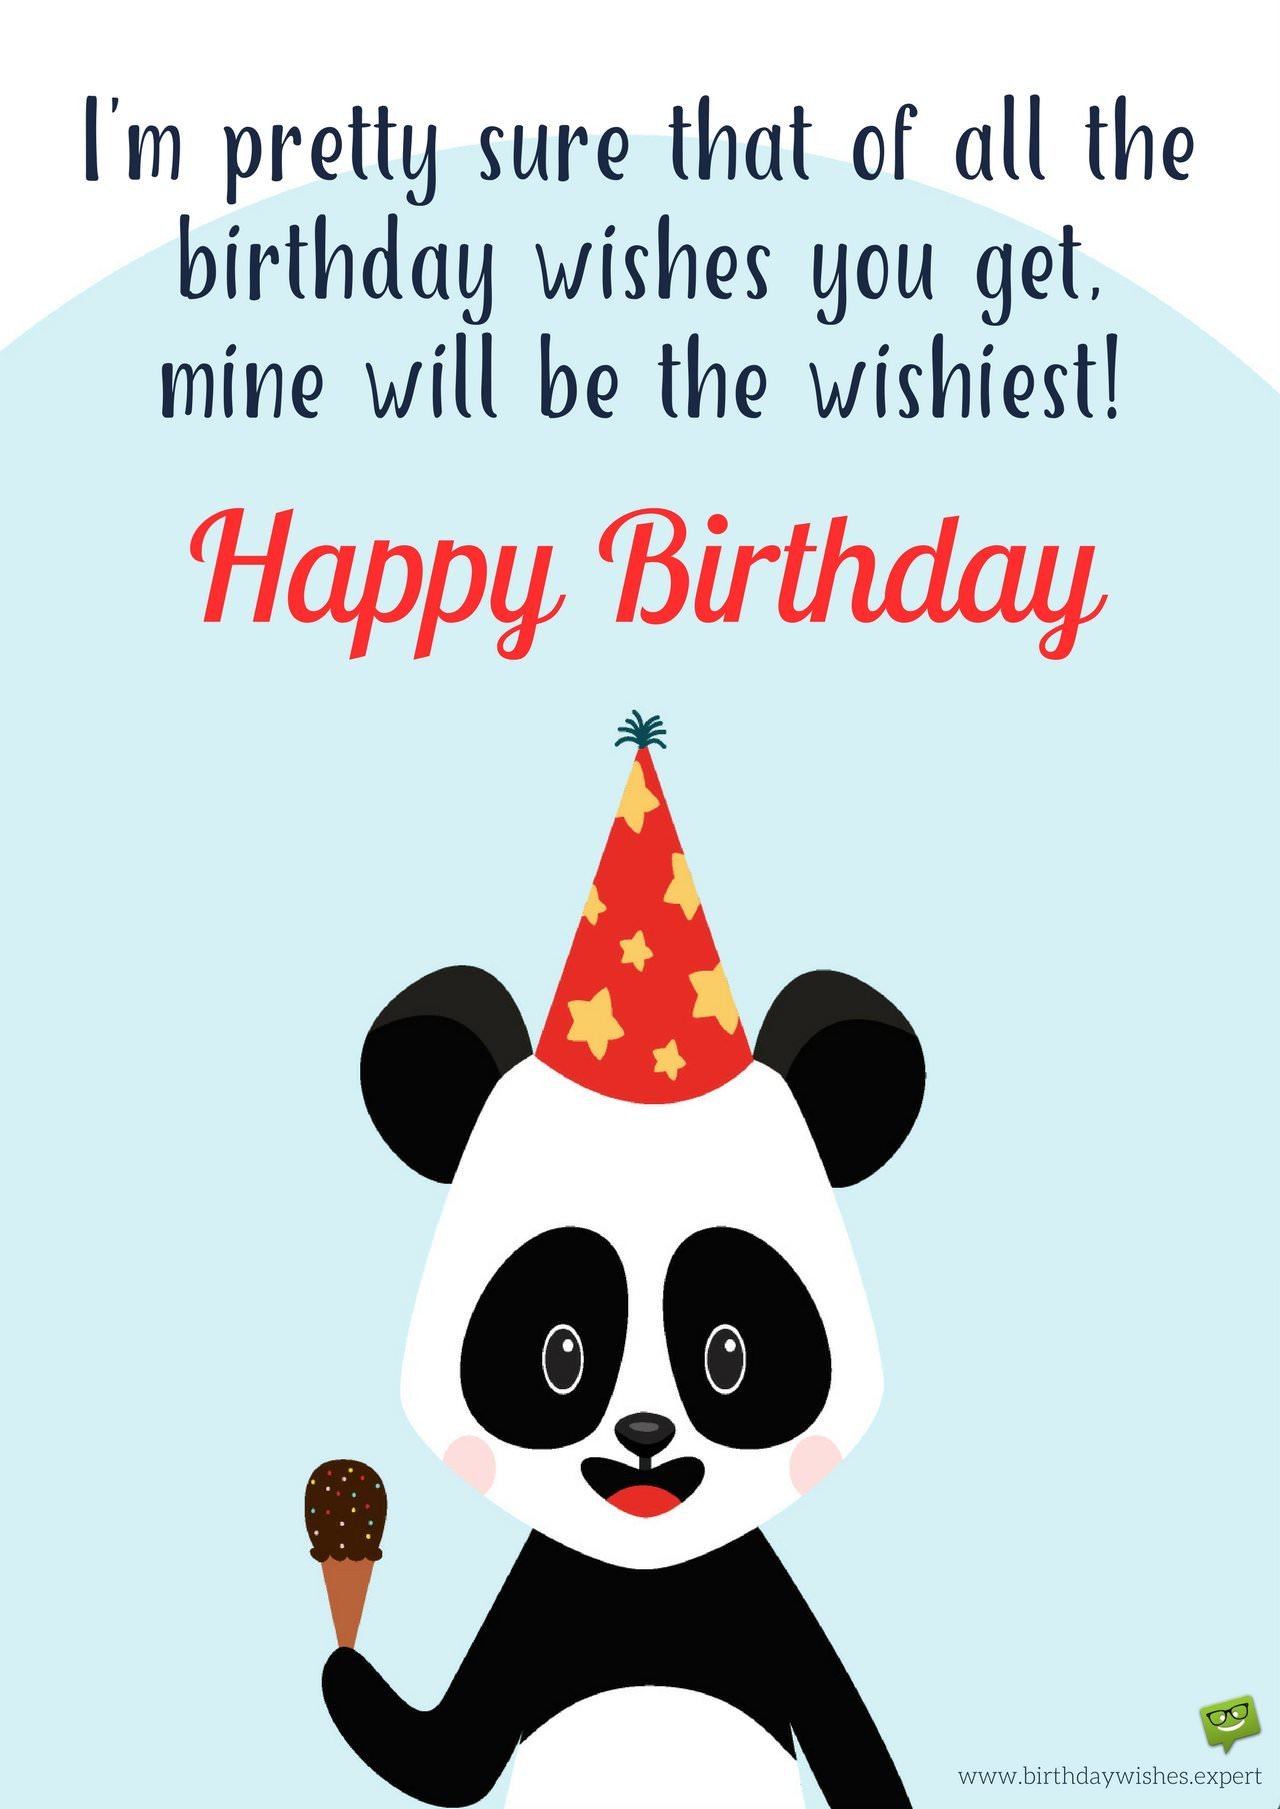 Best ideas about Happy Birthday Wishes Funny . Save or Pin The Funniest Wishes to Make your Wife Smile on her Birthday Now.